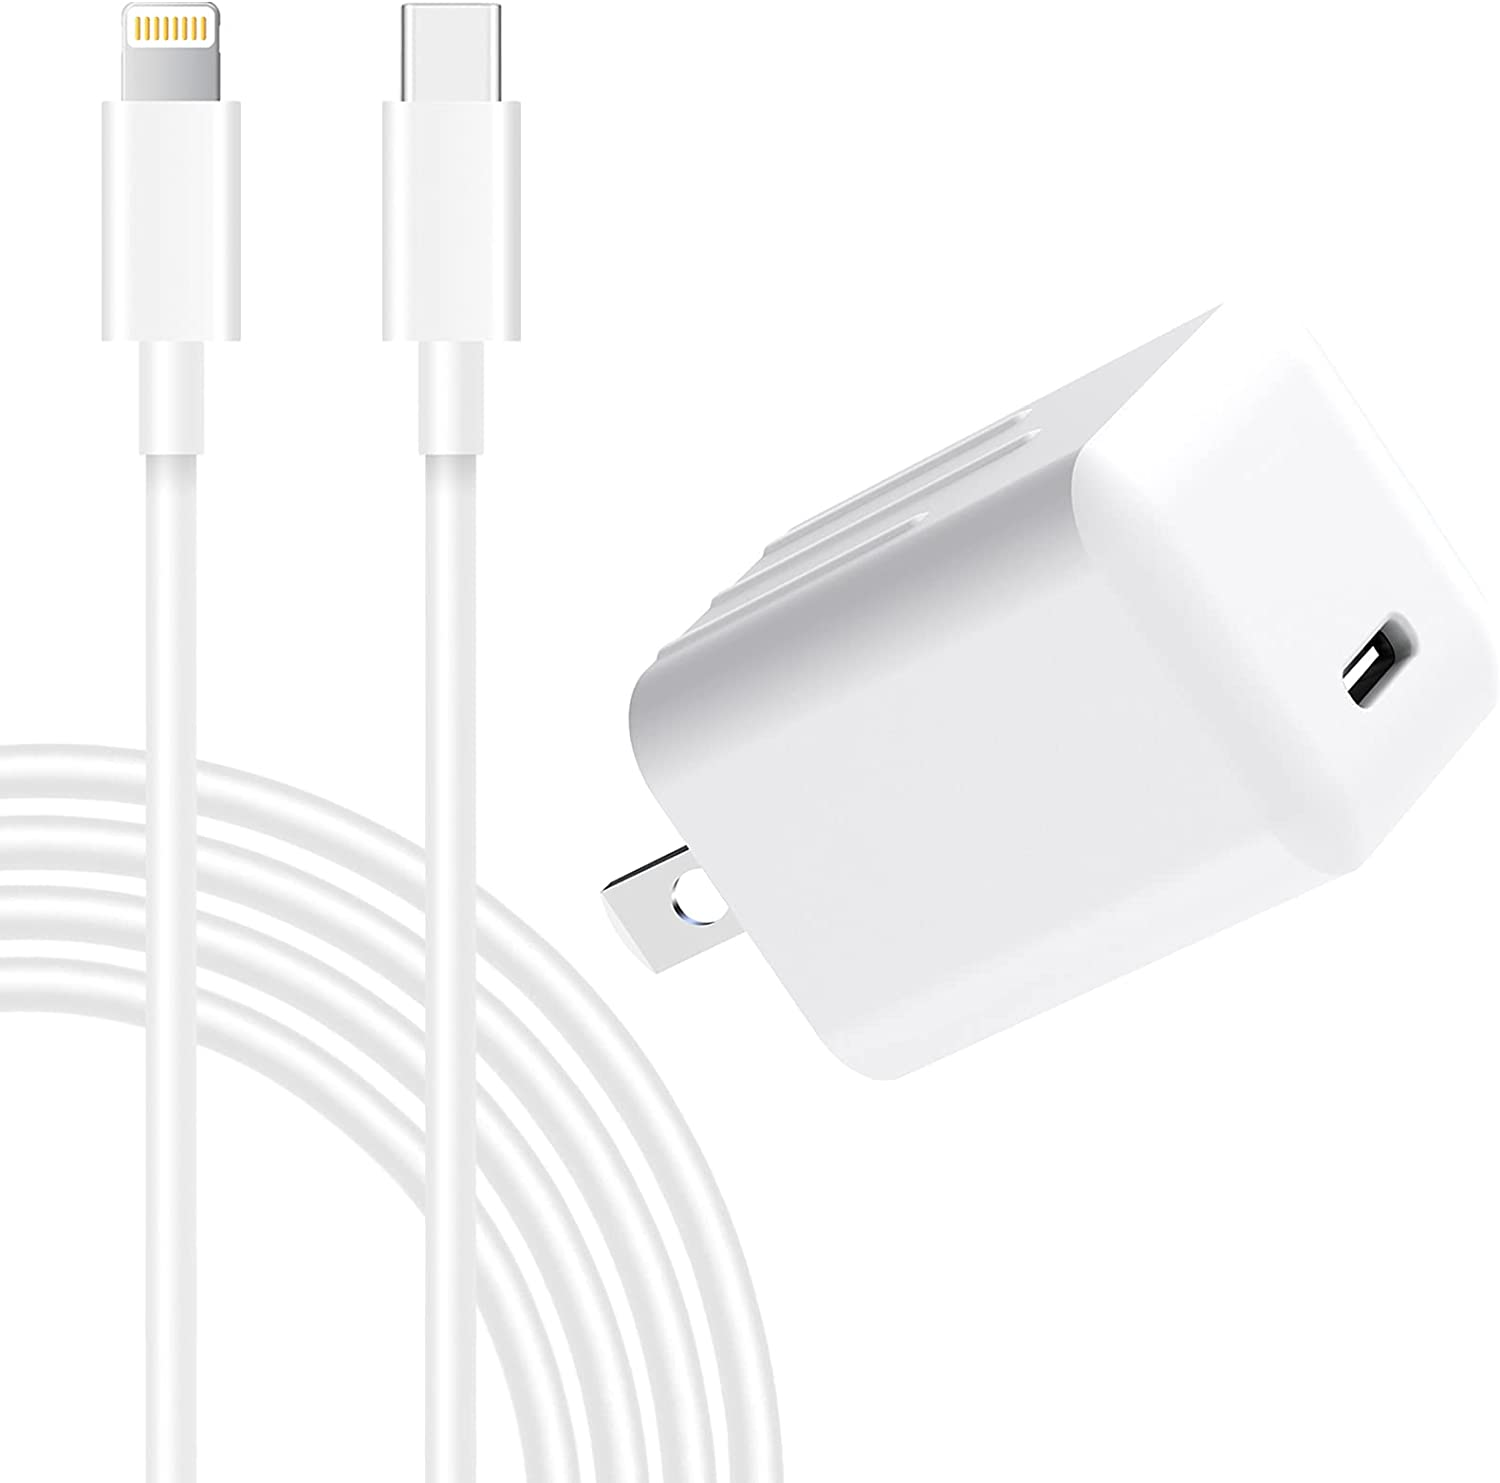 iPhone 13 12 Fast Charger, Wall Charger Quick charging 20W USB Plug Adapter with 6FT Type C to Lightning Cable[Apple MFi Certified]Compatible with iPhone 13 12 Pro Max 11 Xs XR X 8 Plus iPad Air Mini